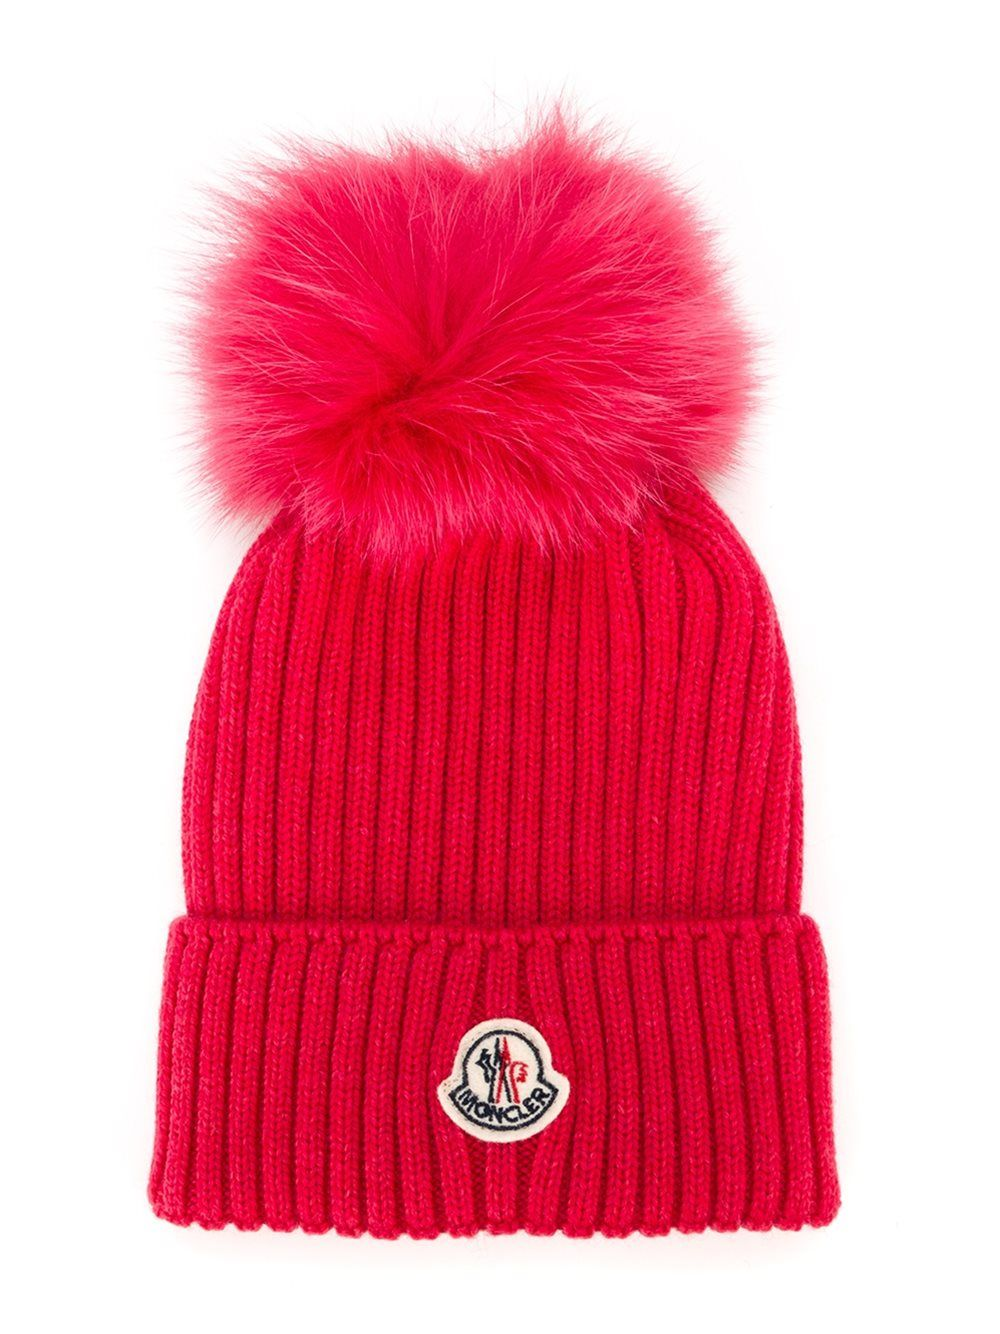 f182888558c moncler  kids  beanie  fur  red  pompom  hats  new www.jofre.eu ...